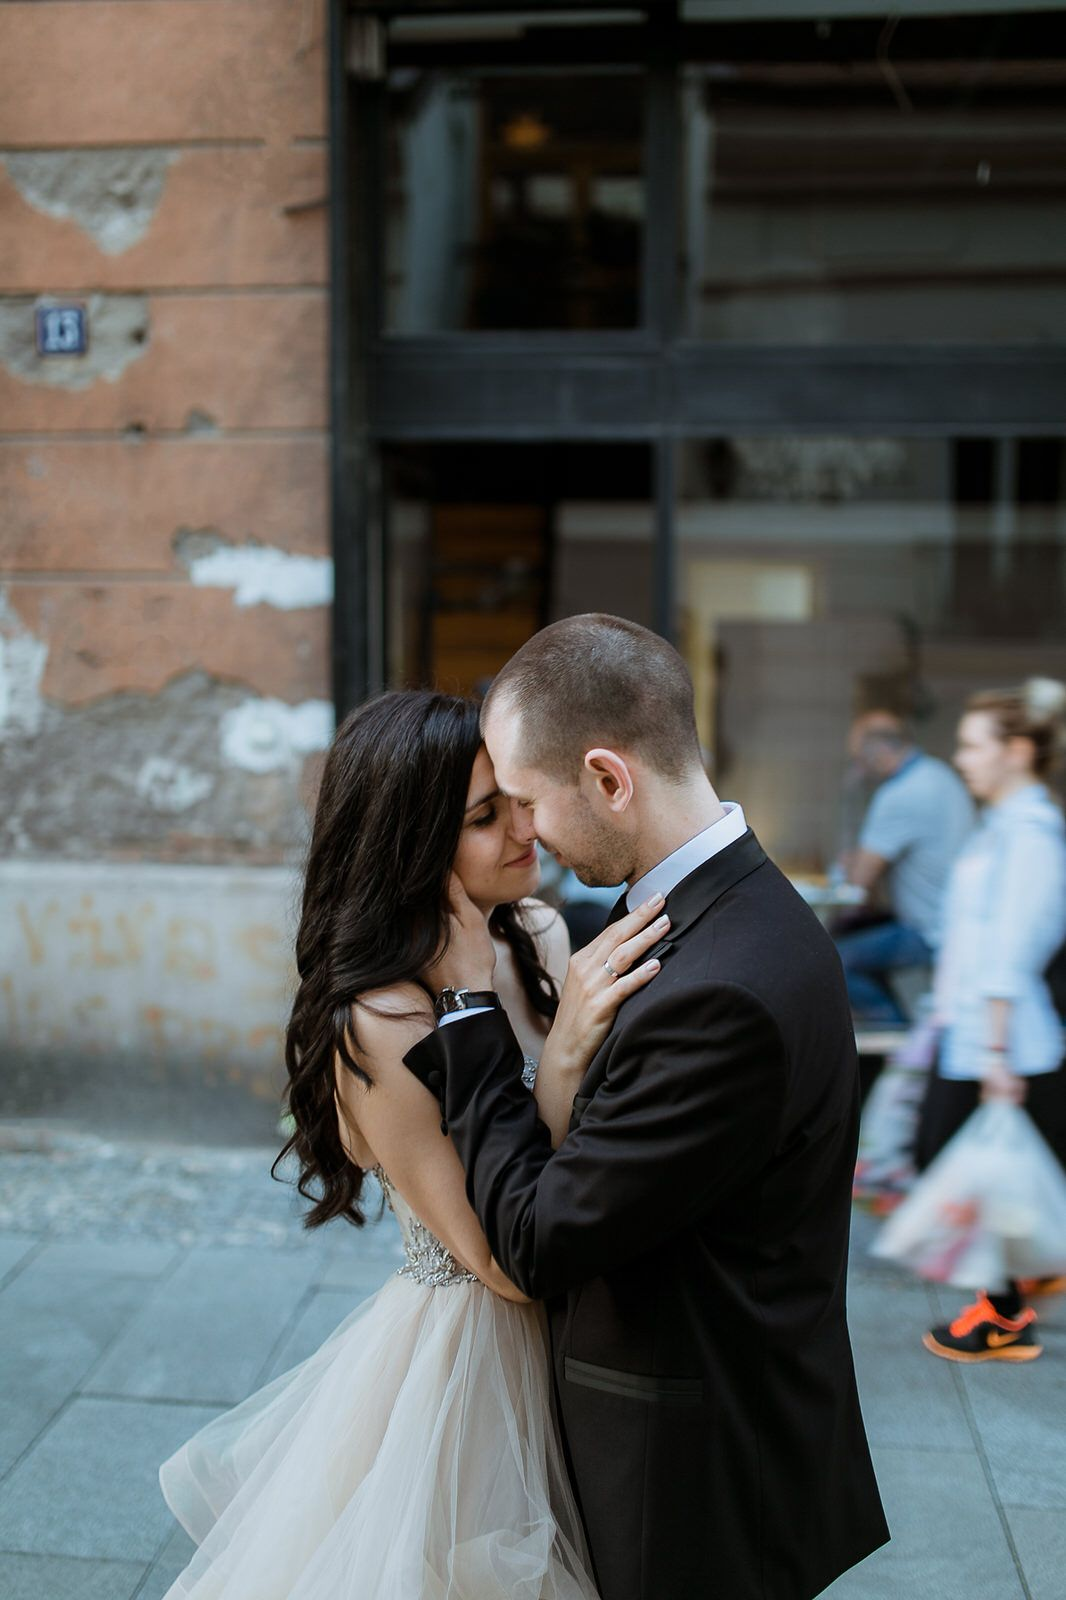 Bride and groom posing in the streets of Belgrade